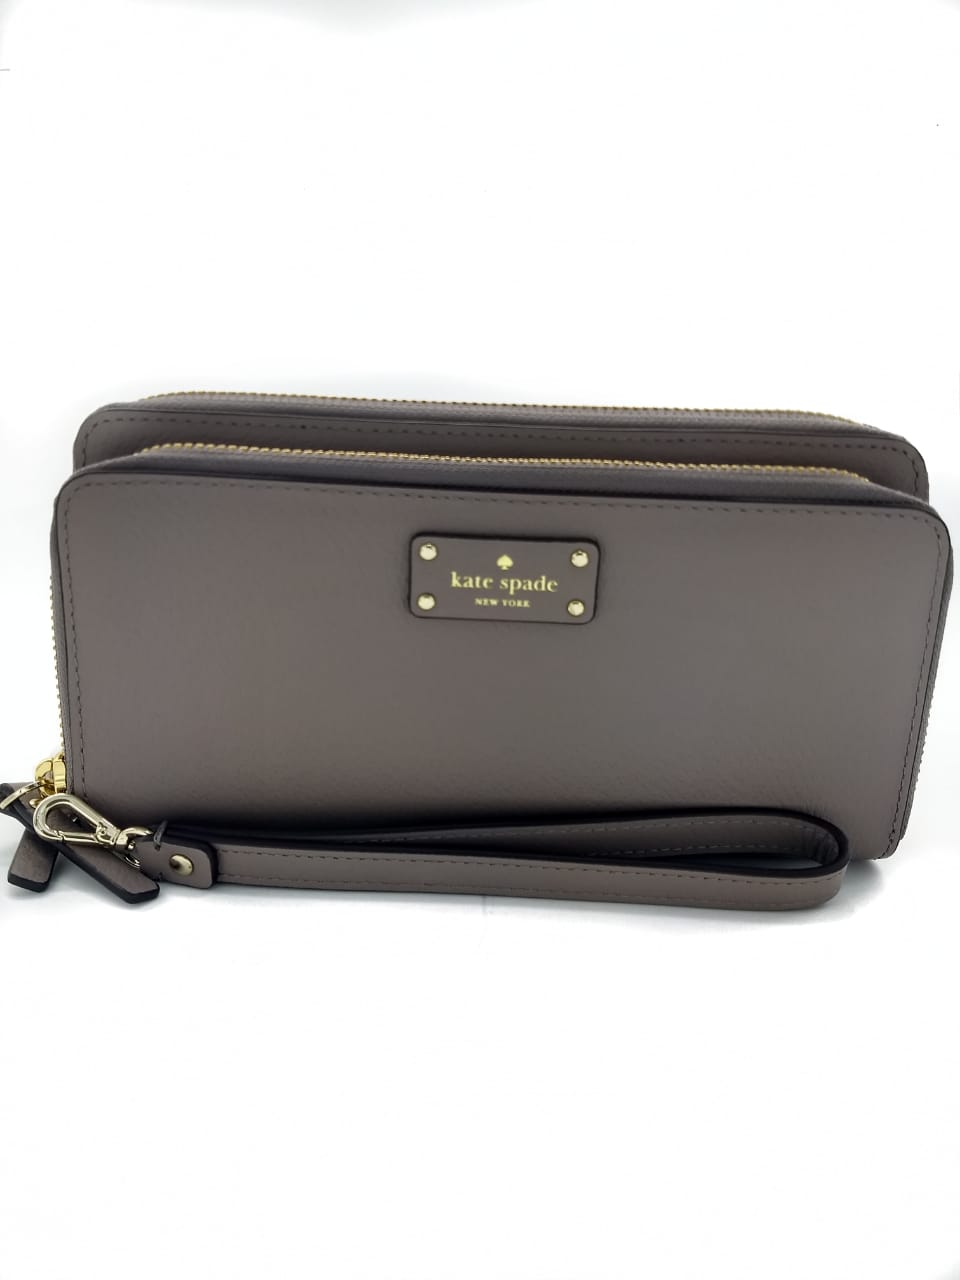 ee7b4942c Carteira Kate Spade - Anita - Cinza - By Viana Shop